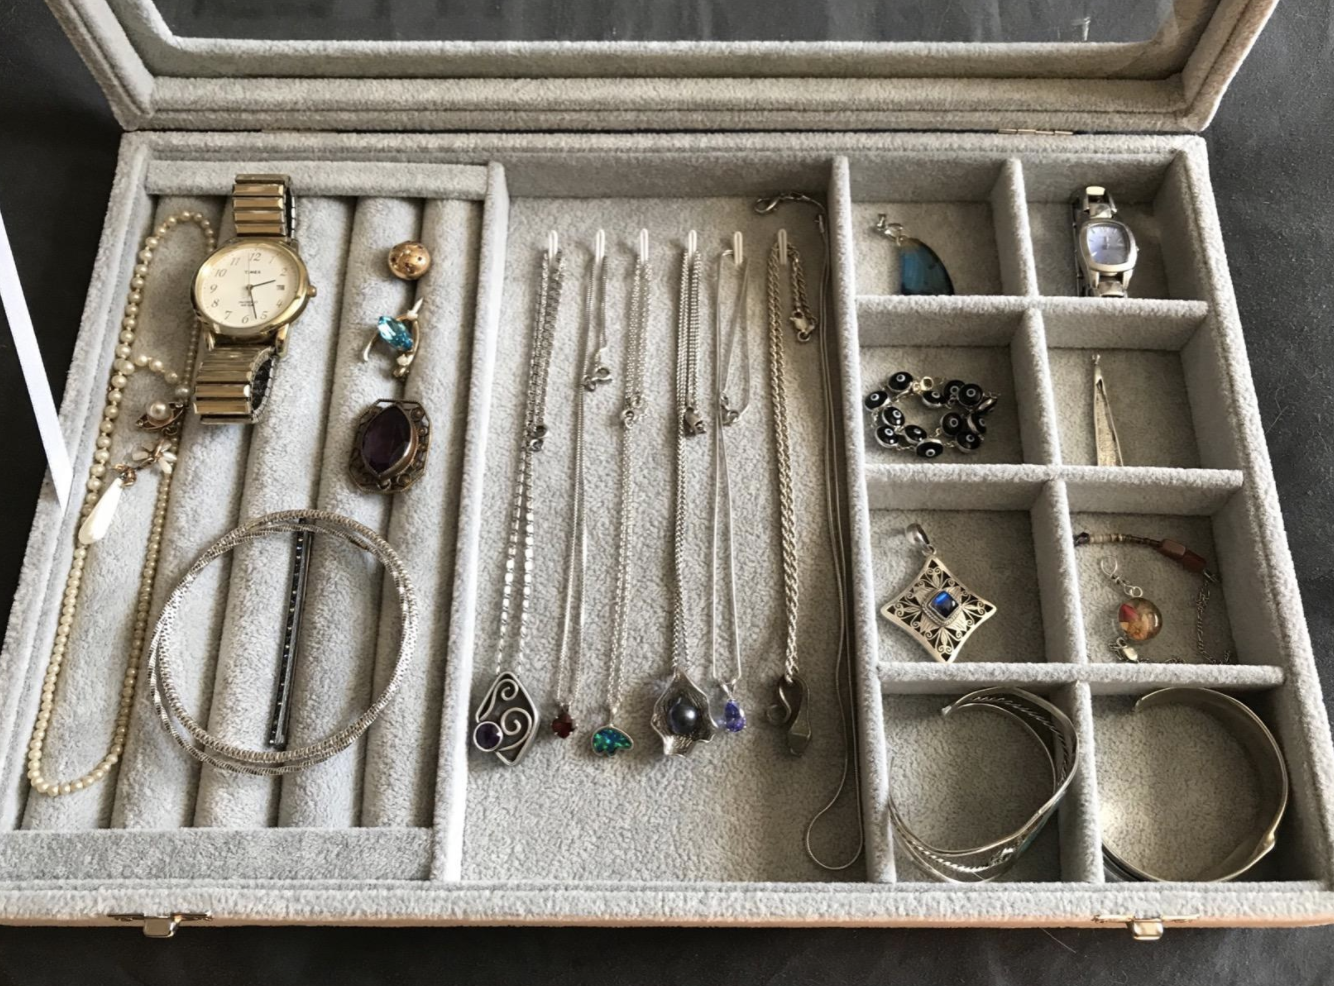 reviewer image of jewelry organizer holding a variety of jewelry types